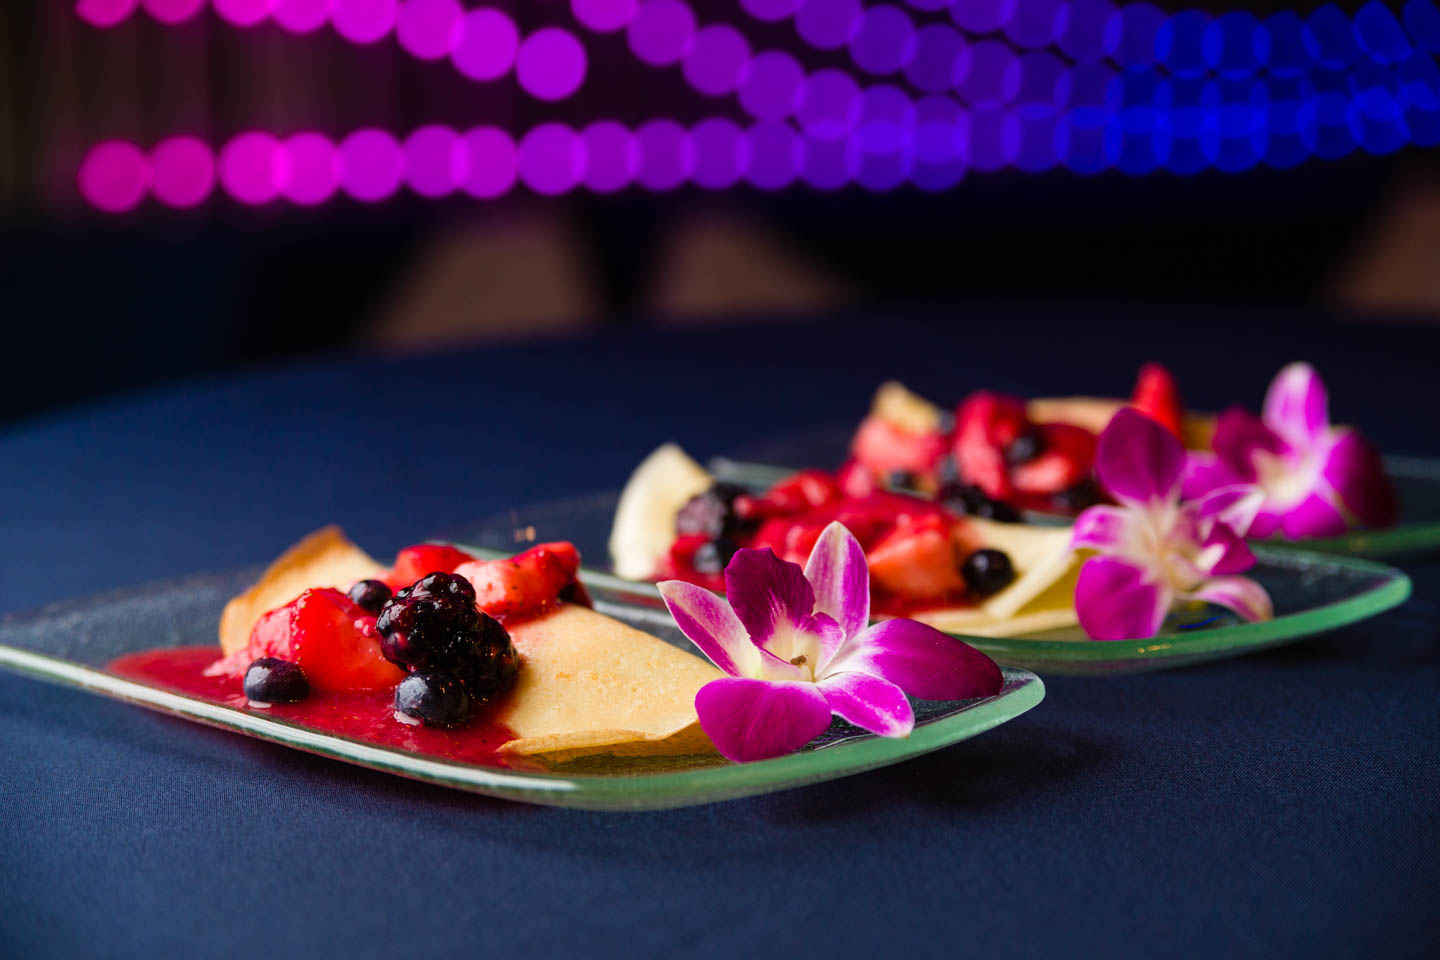 Berries Crepes and an edible flower for dessert